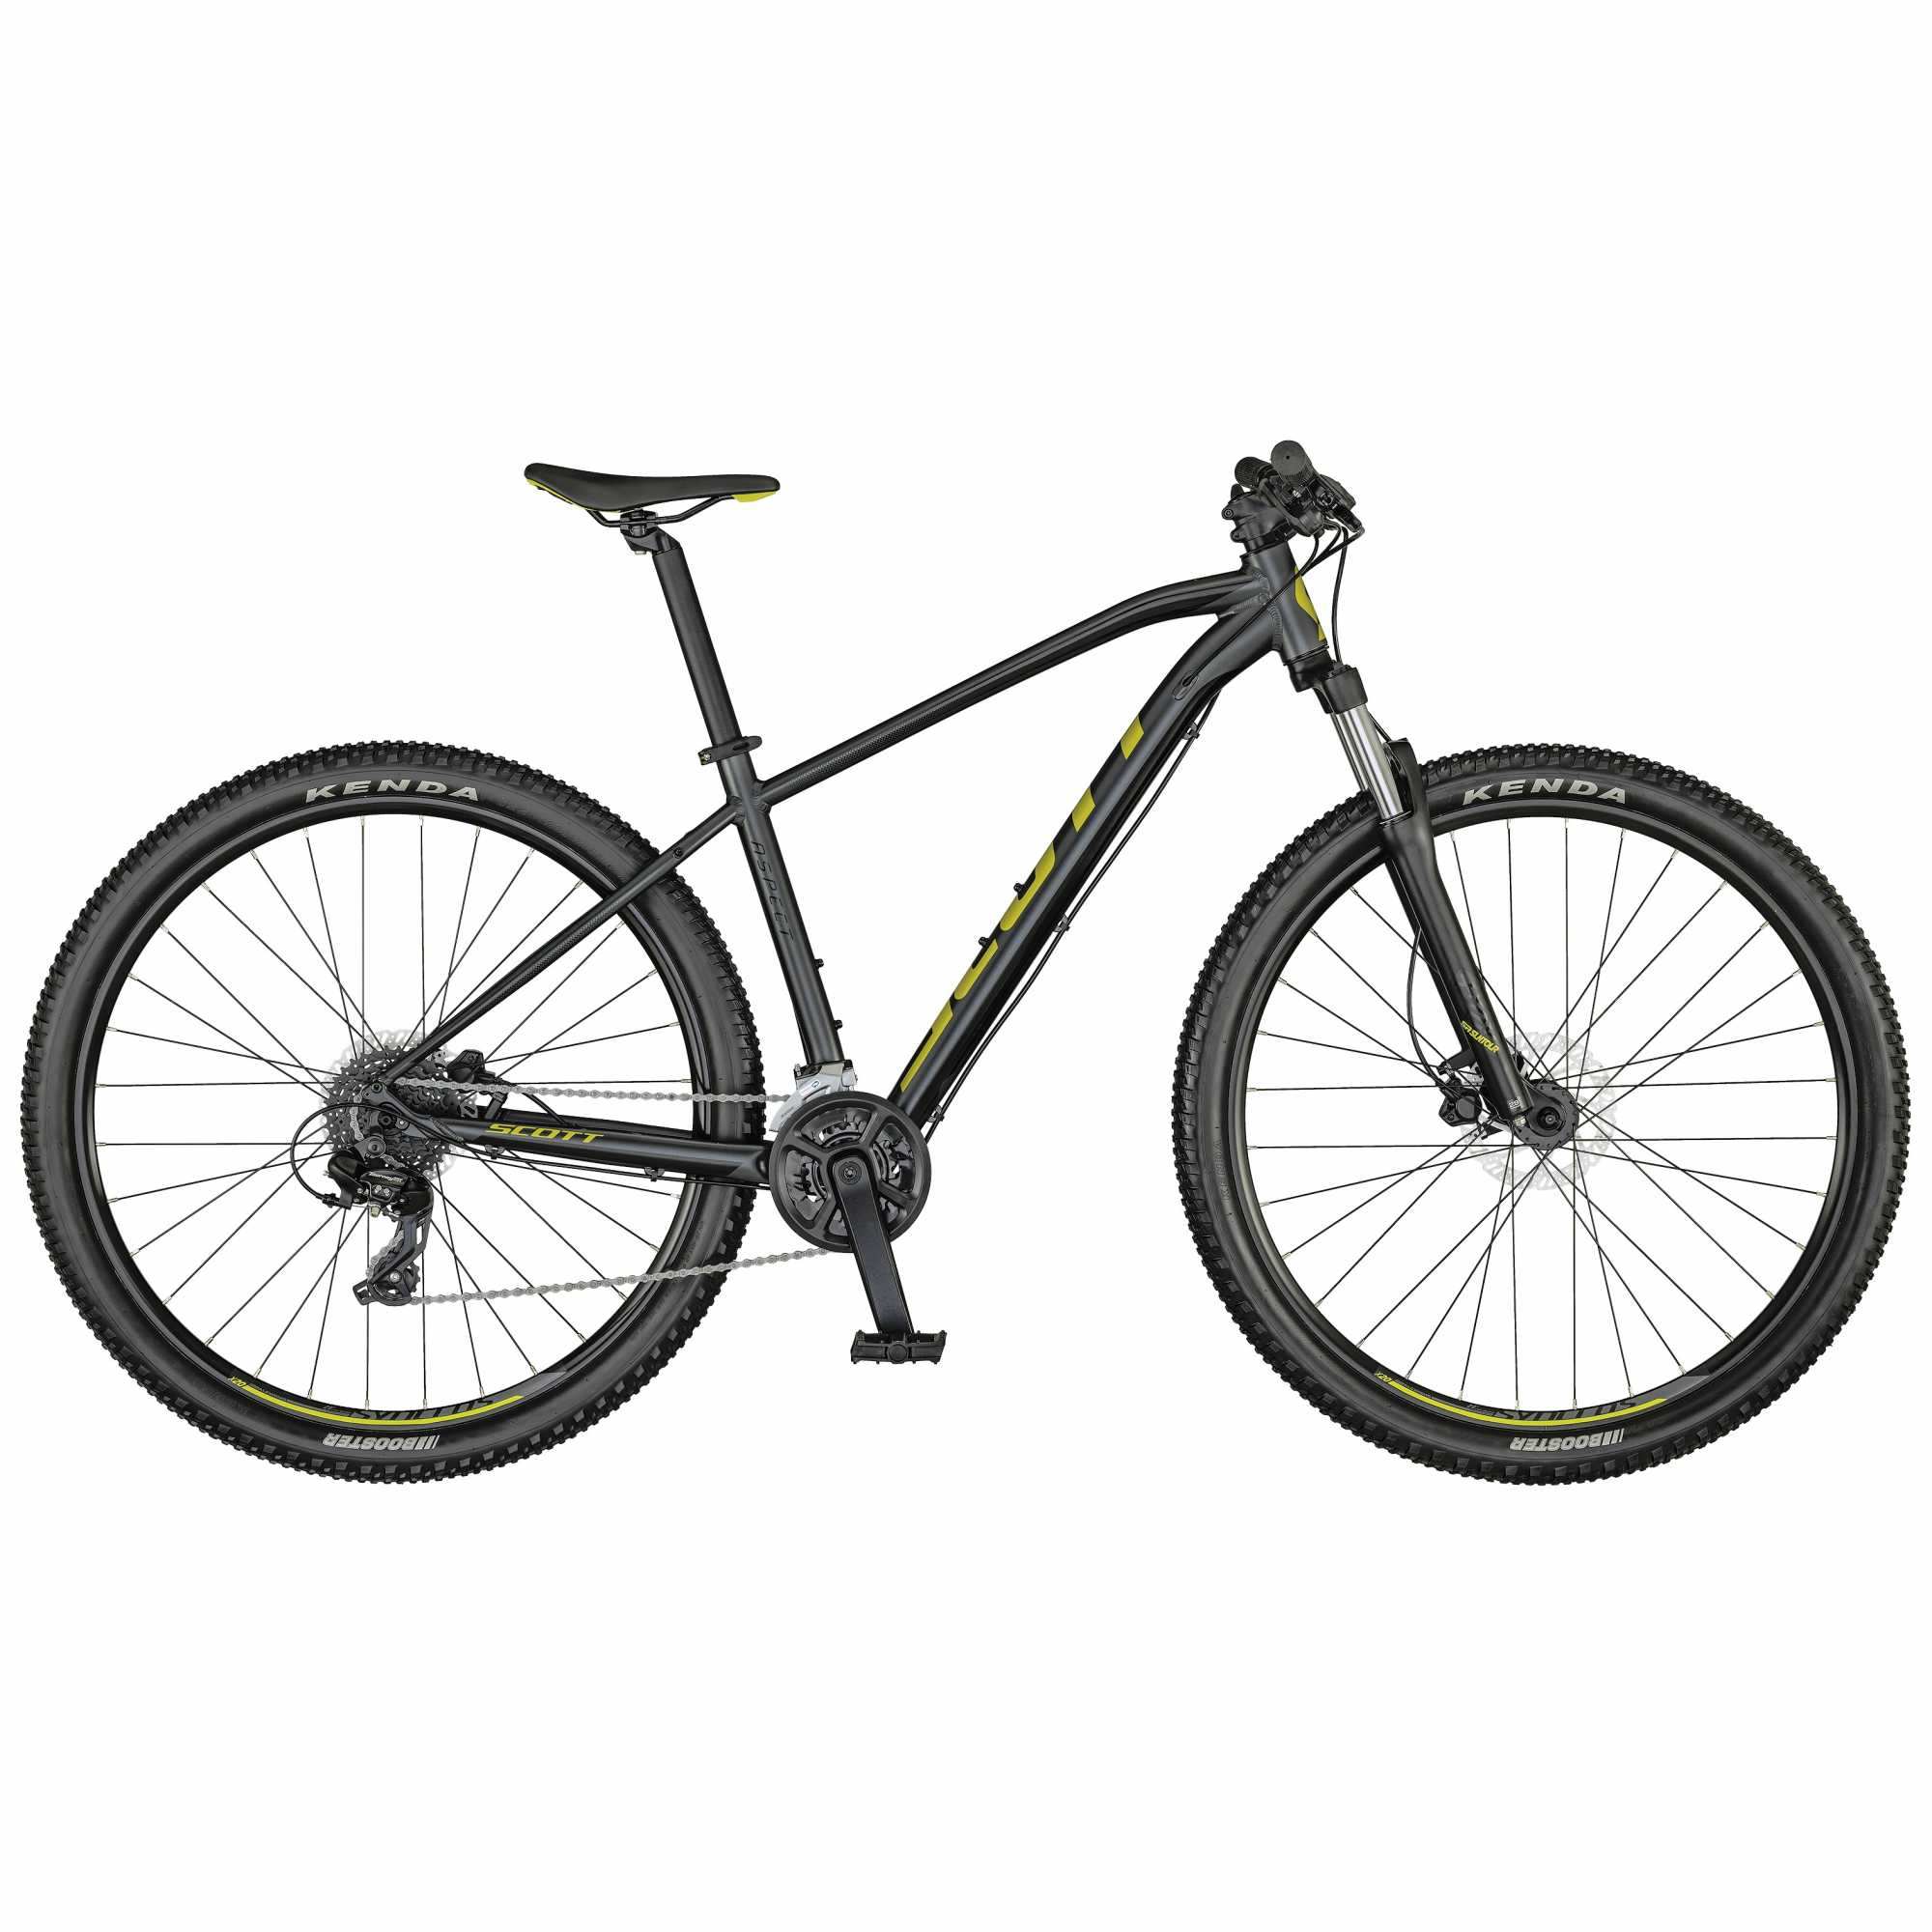 Велосипед SCOTT Aspect 960 dark grey (2021)